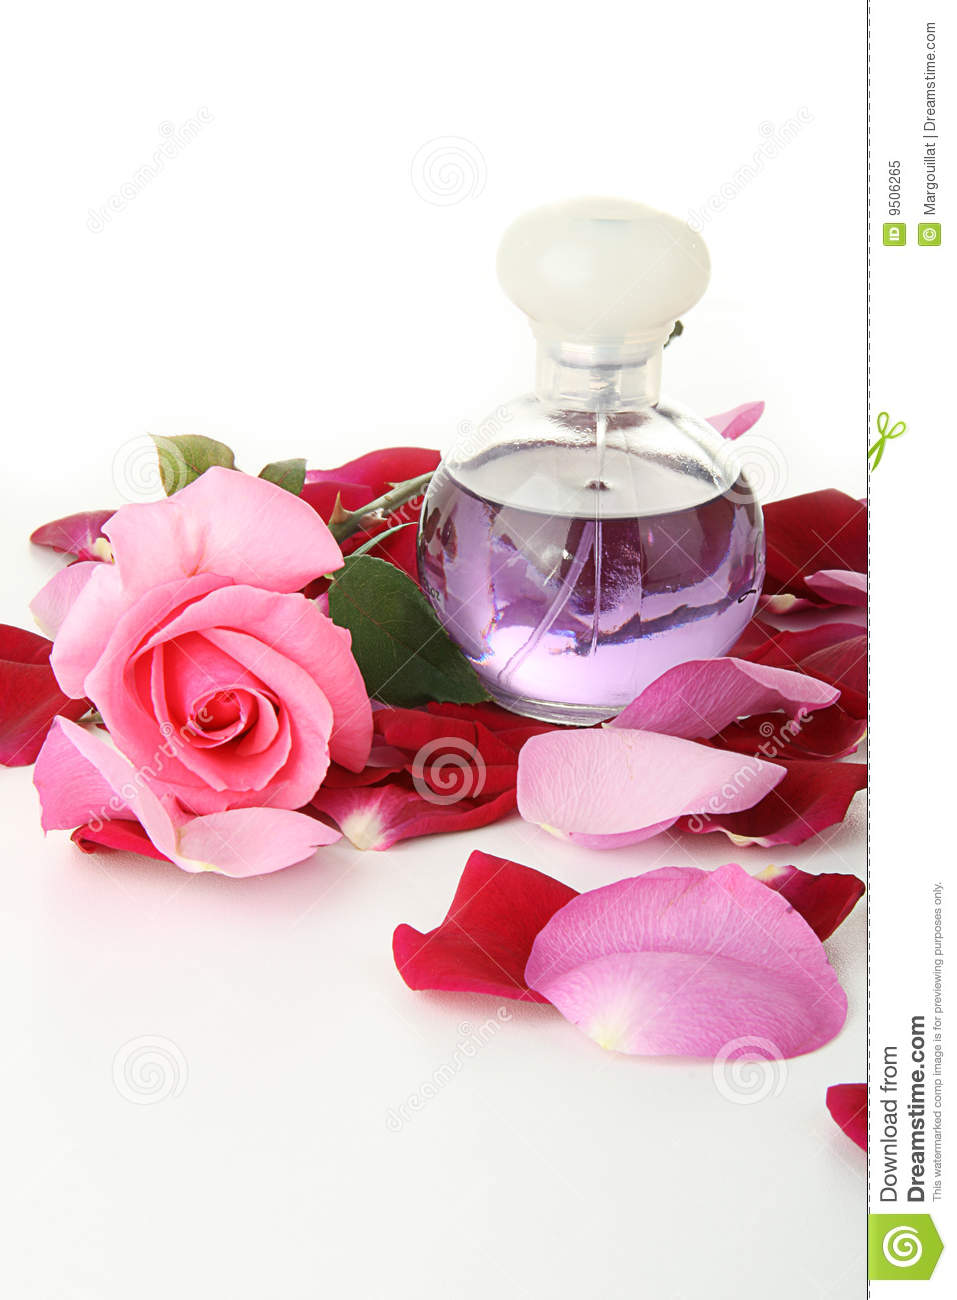 Perfume And Roses Petals Stock Image. Image Of Marry